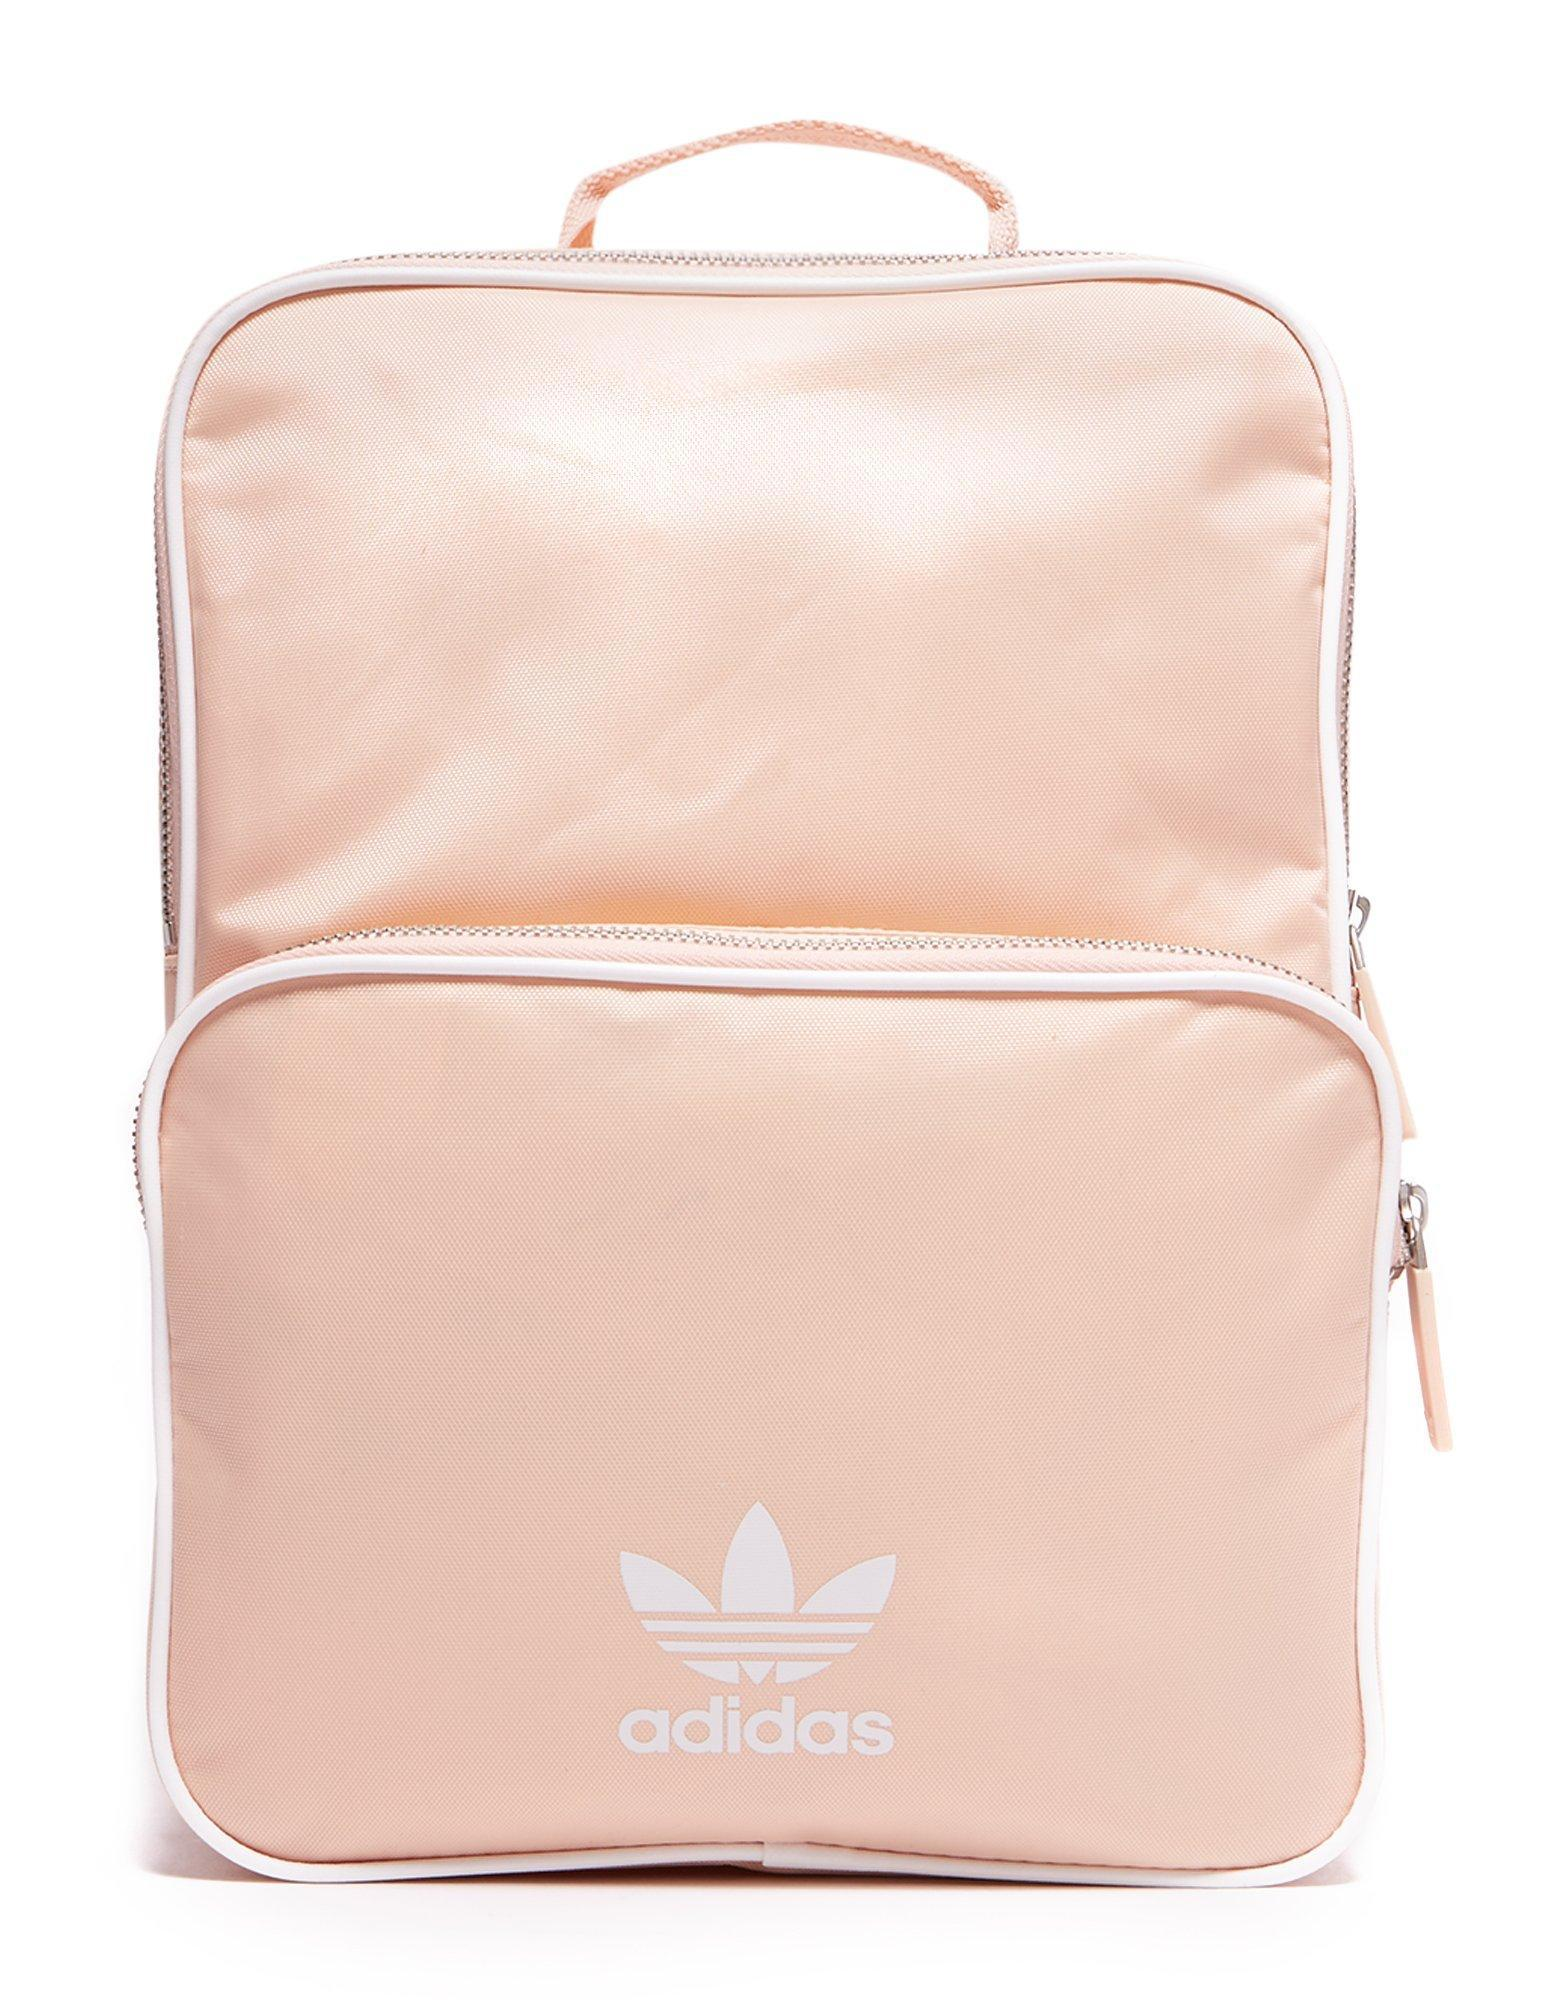 7b53c4e1dde1 Lyst - adidas Originals Adicolor Backpack in Pink